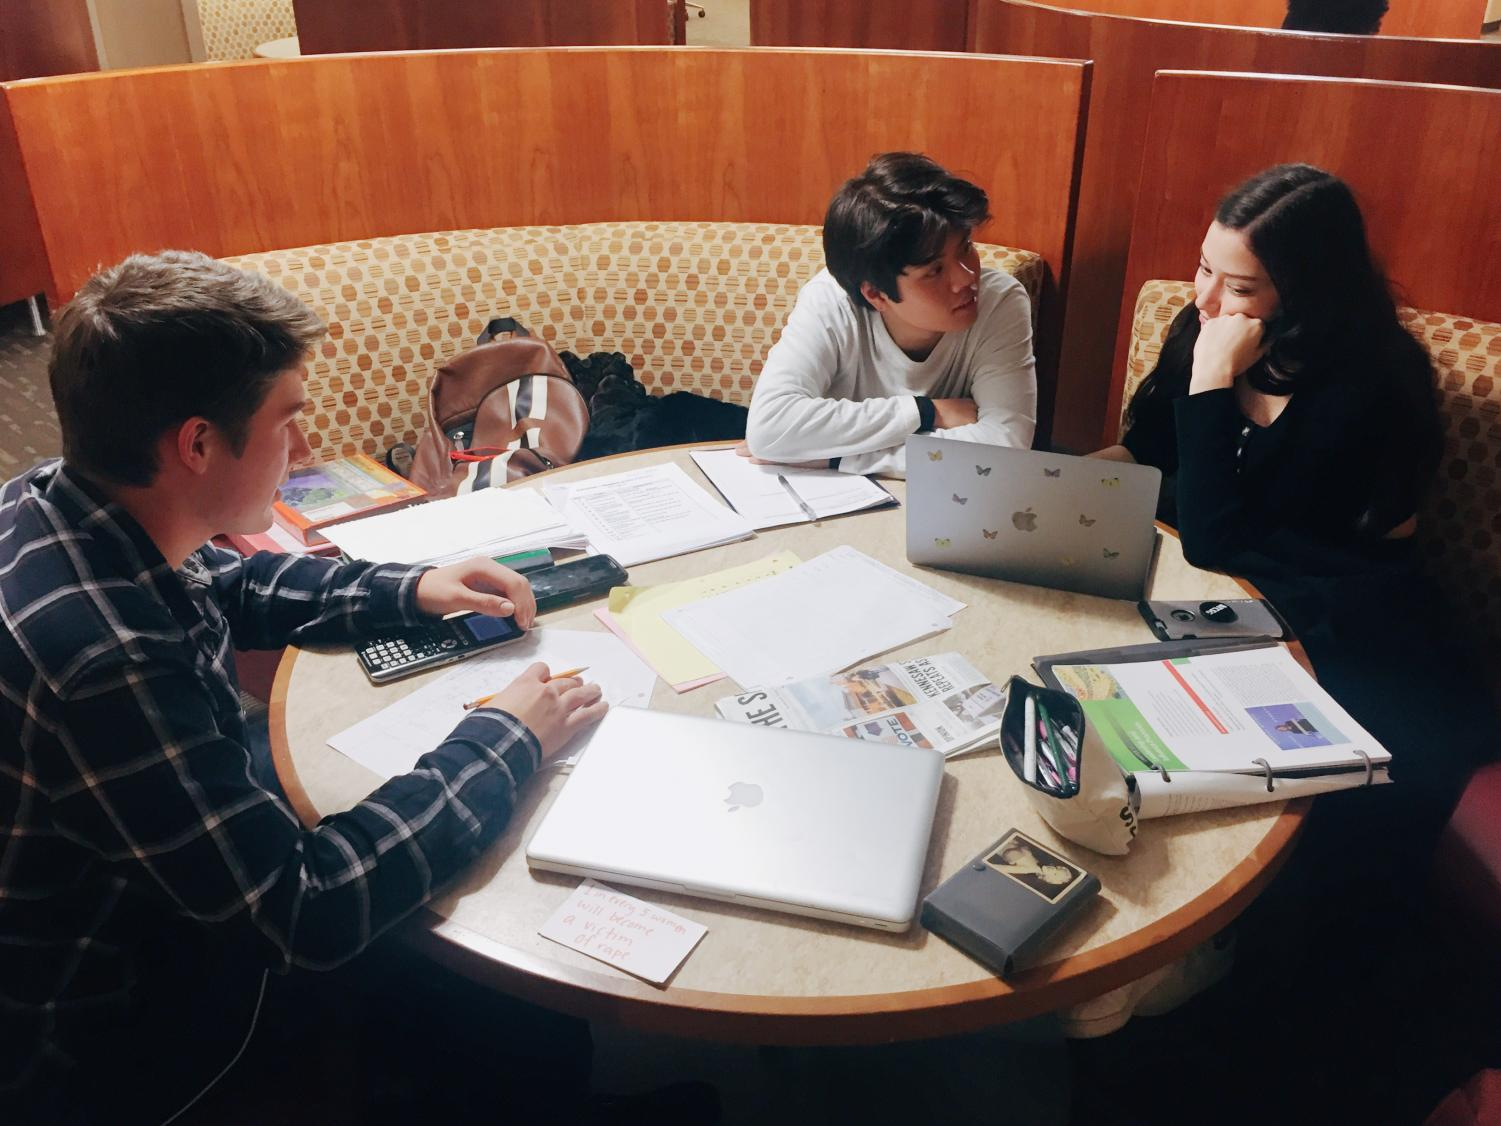 NC seniors Reed Walker, Ryan Camesa, and Christine Call utilize the community's public facilities to study for their upcoming finals and complete homework.